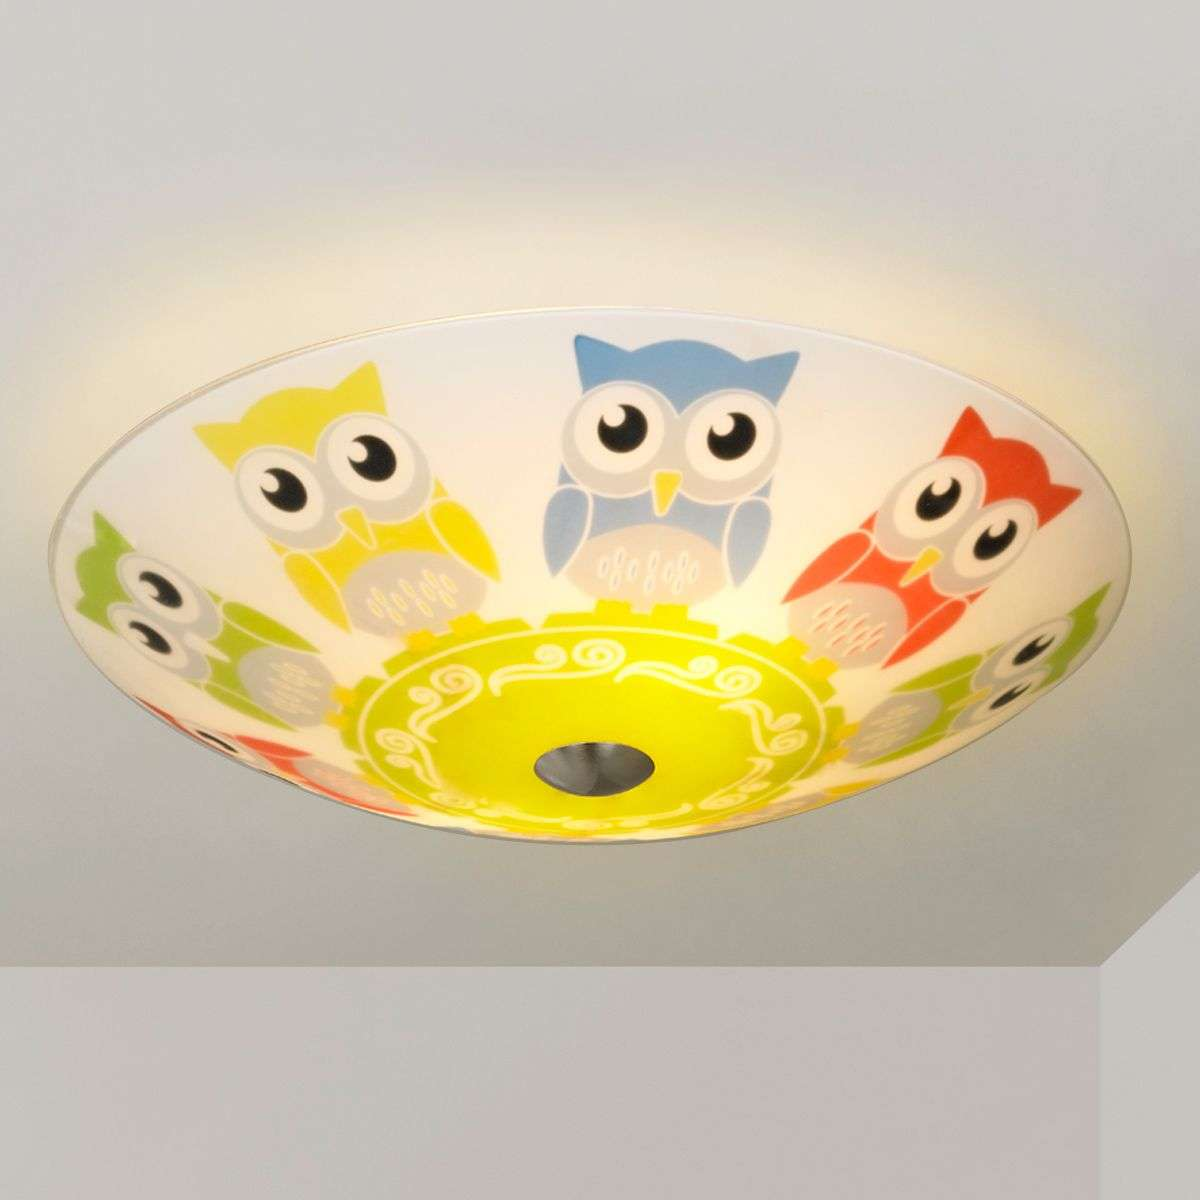 LED children's room ceiling light Eula, 40 cm-9620562-31